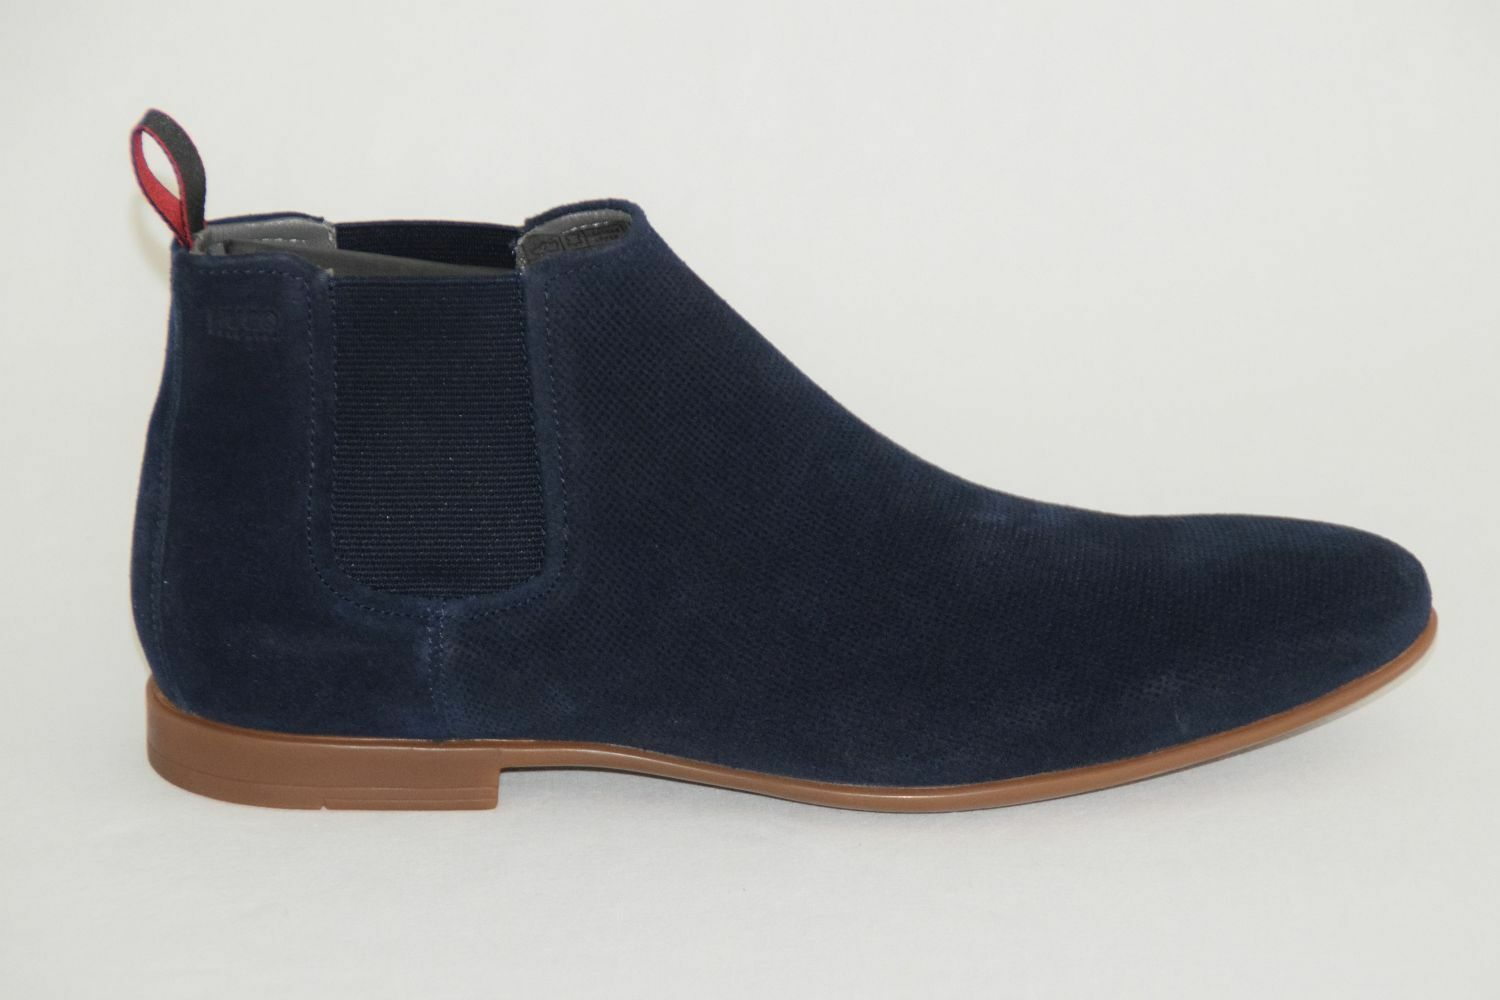 HUGO BOSS Stiefel, Mod. Parcelsio, Gr. EU 42,5 / 9,5 UK 8,5 / US 9,5 /  Navy c24ce7